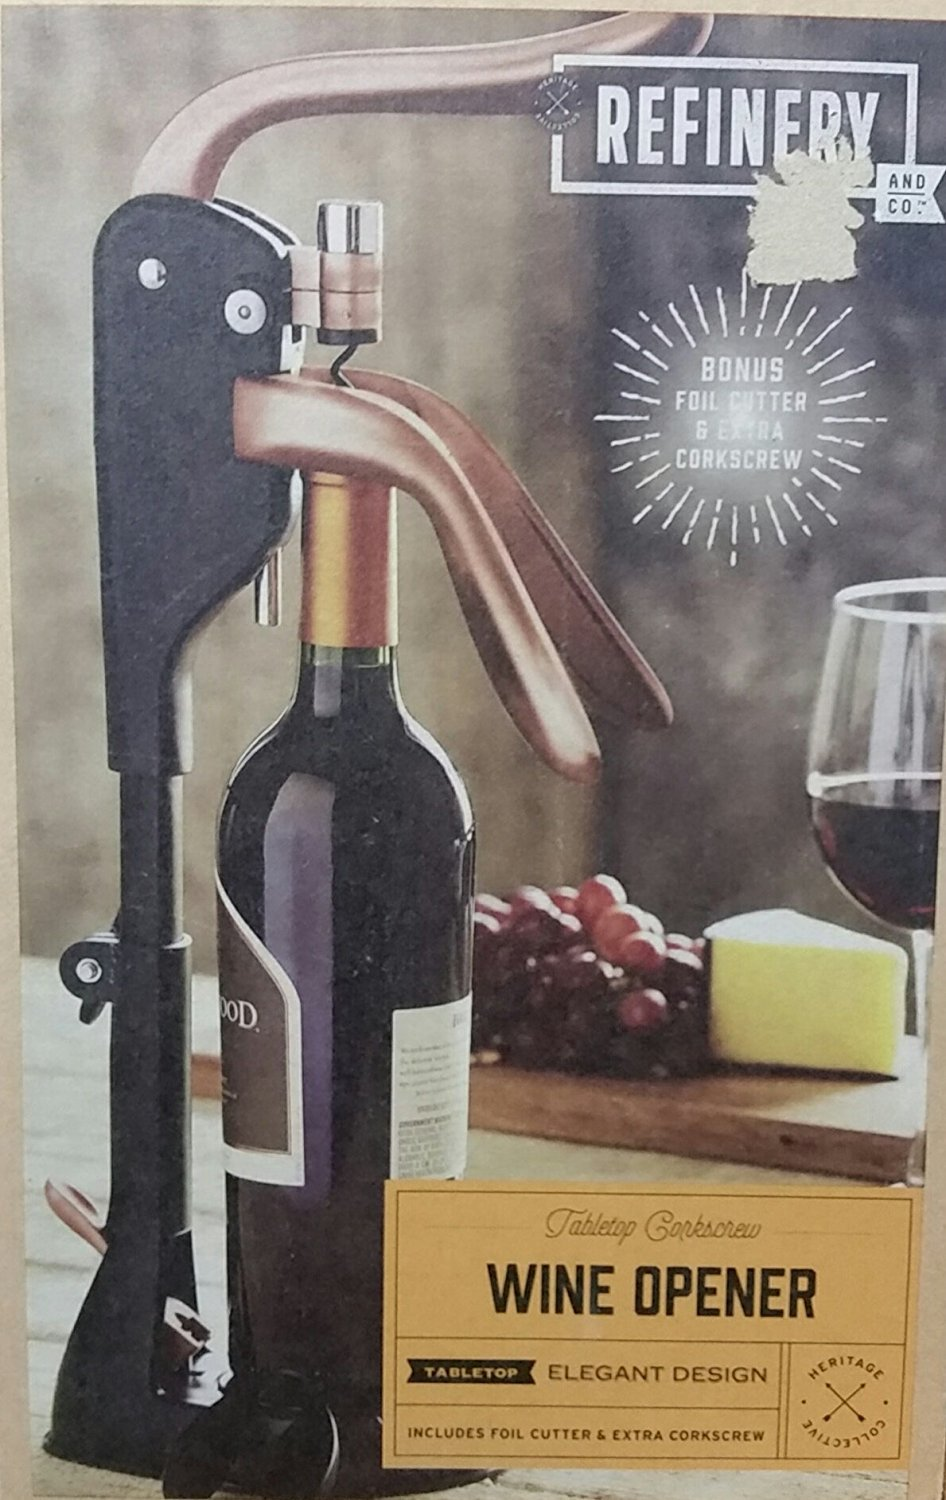 Refinery Tabletop Corkscrew Wine Opener by Refinery